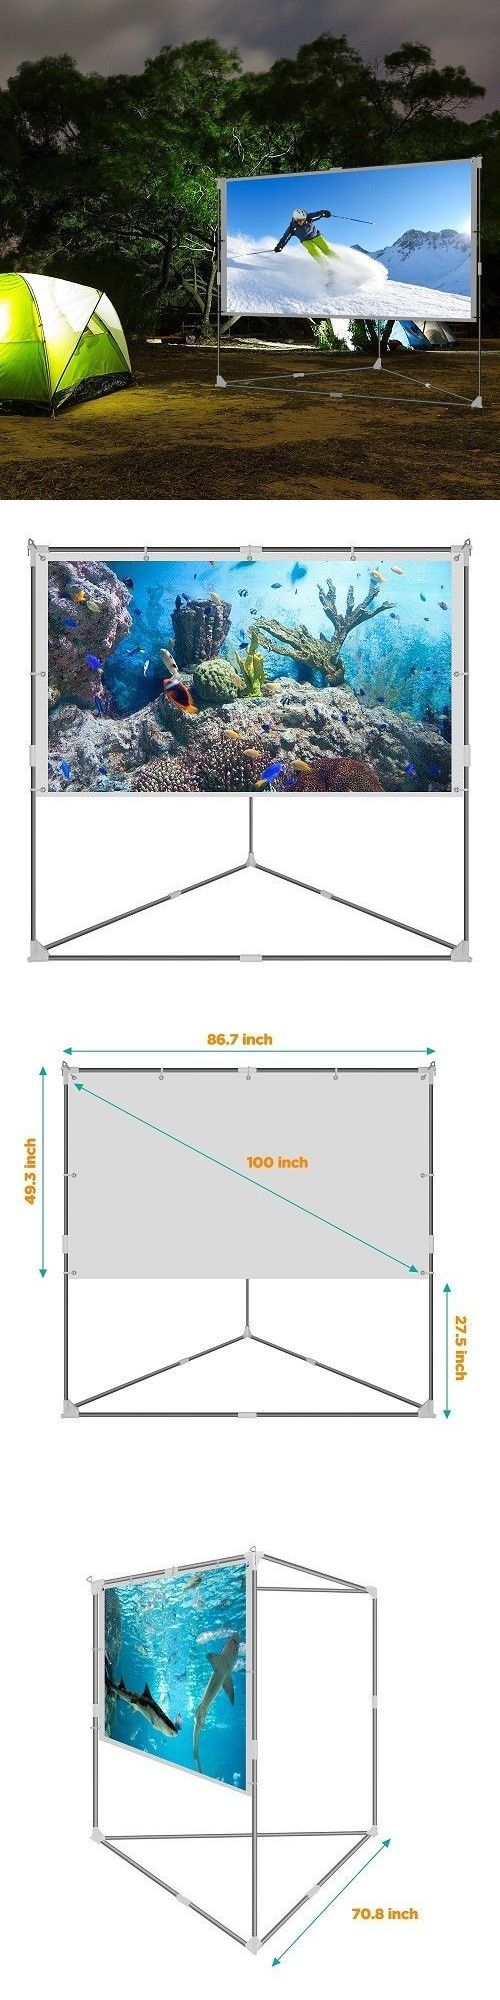 projection screens and material outdoor video screen backyard